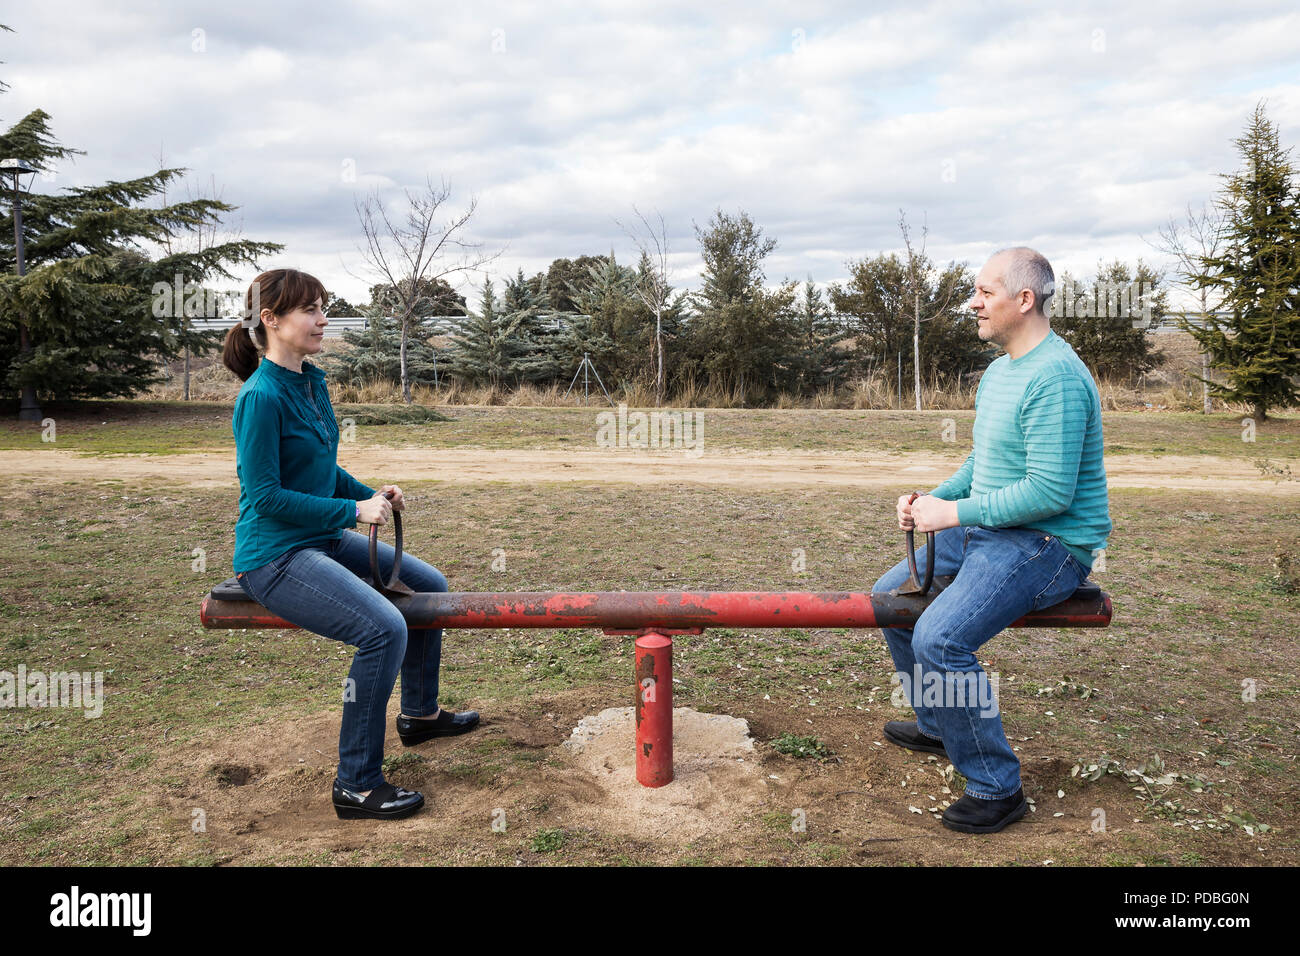 woman and man mounted on a seesaw representing gender equality - Stock Image